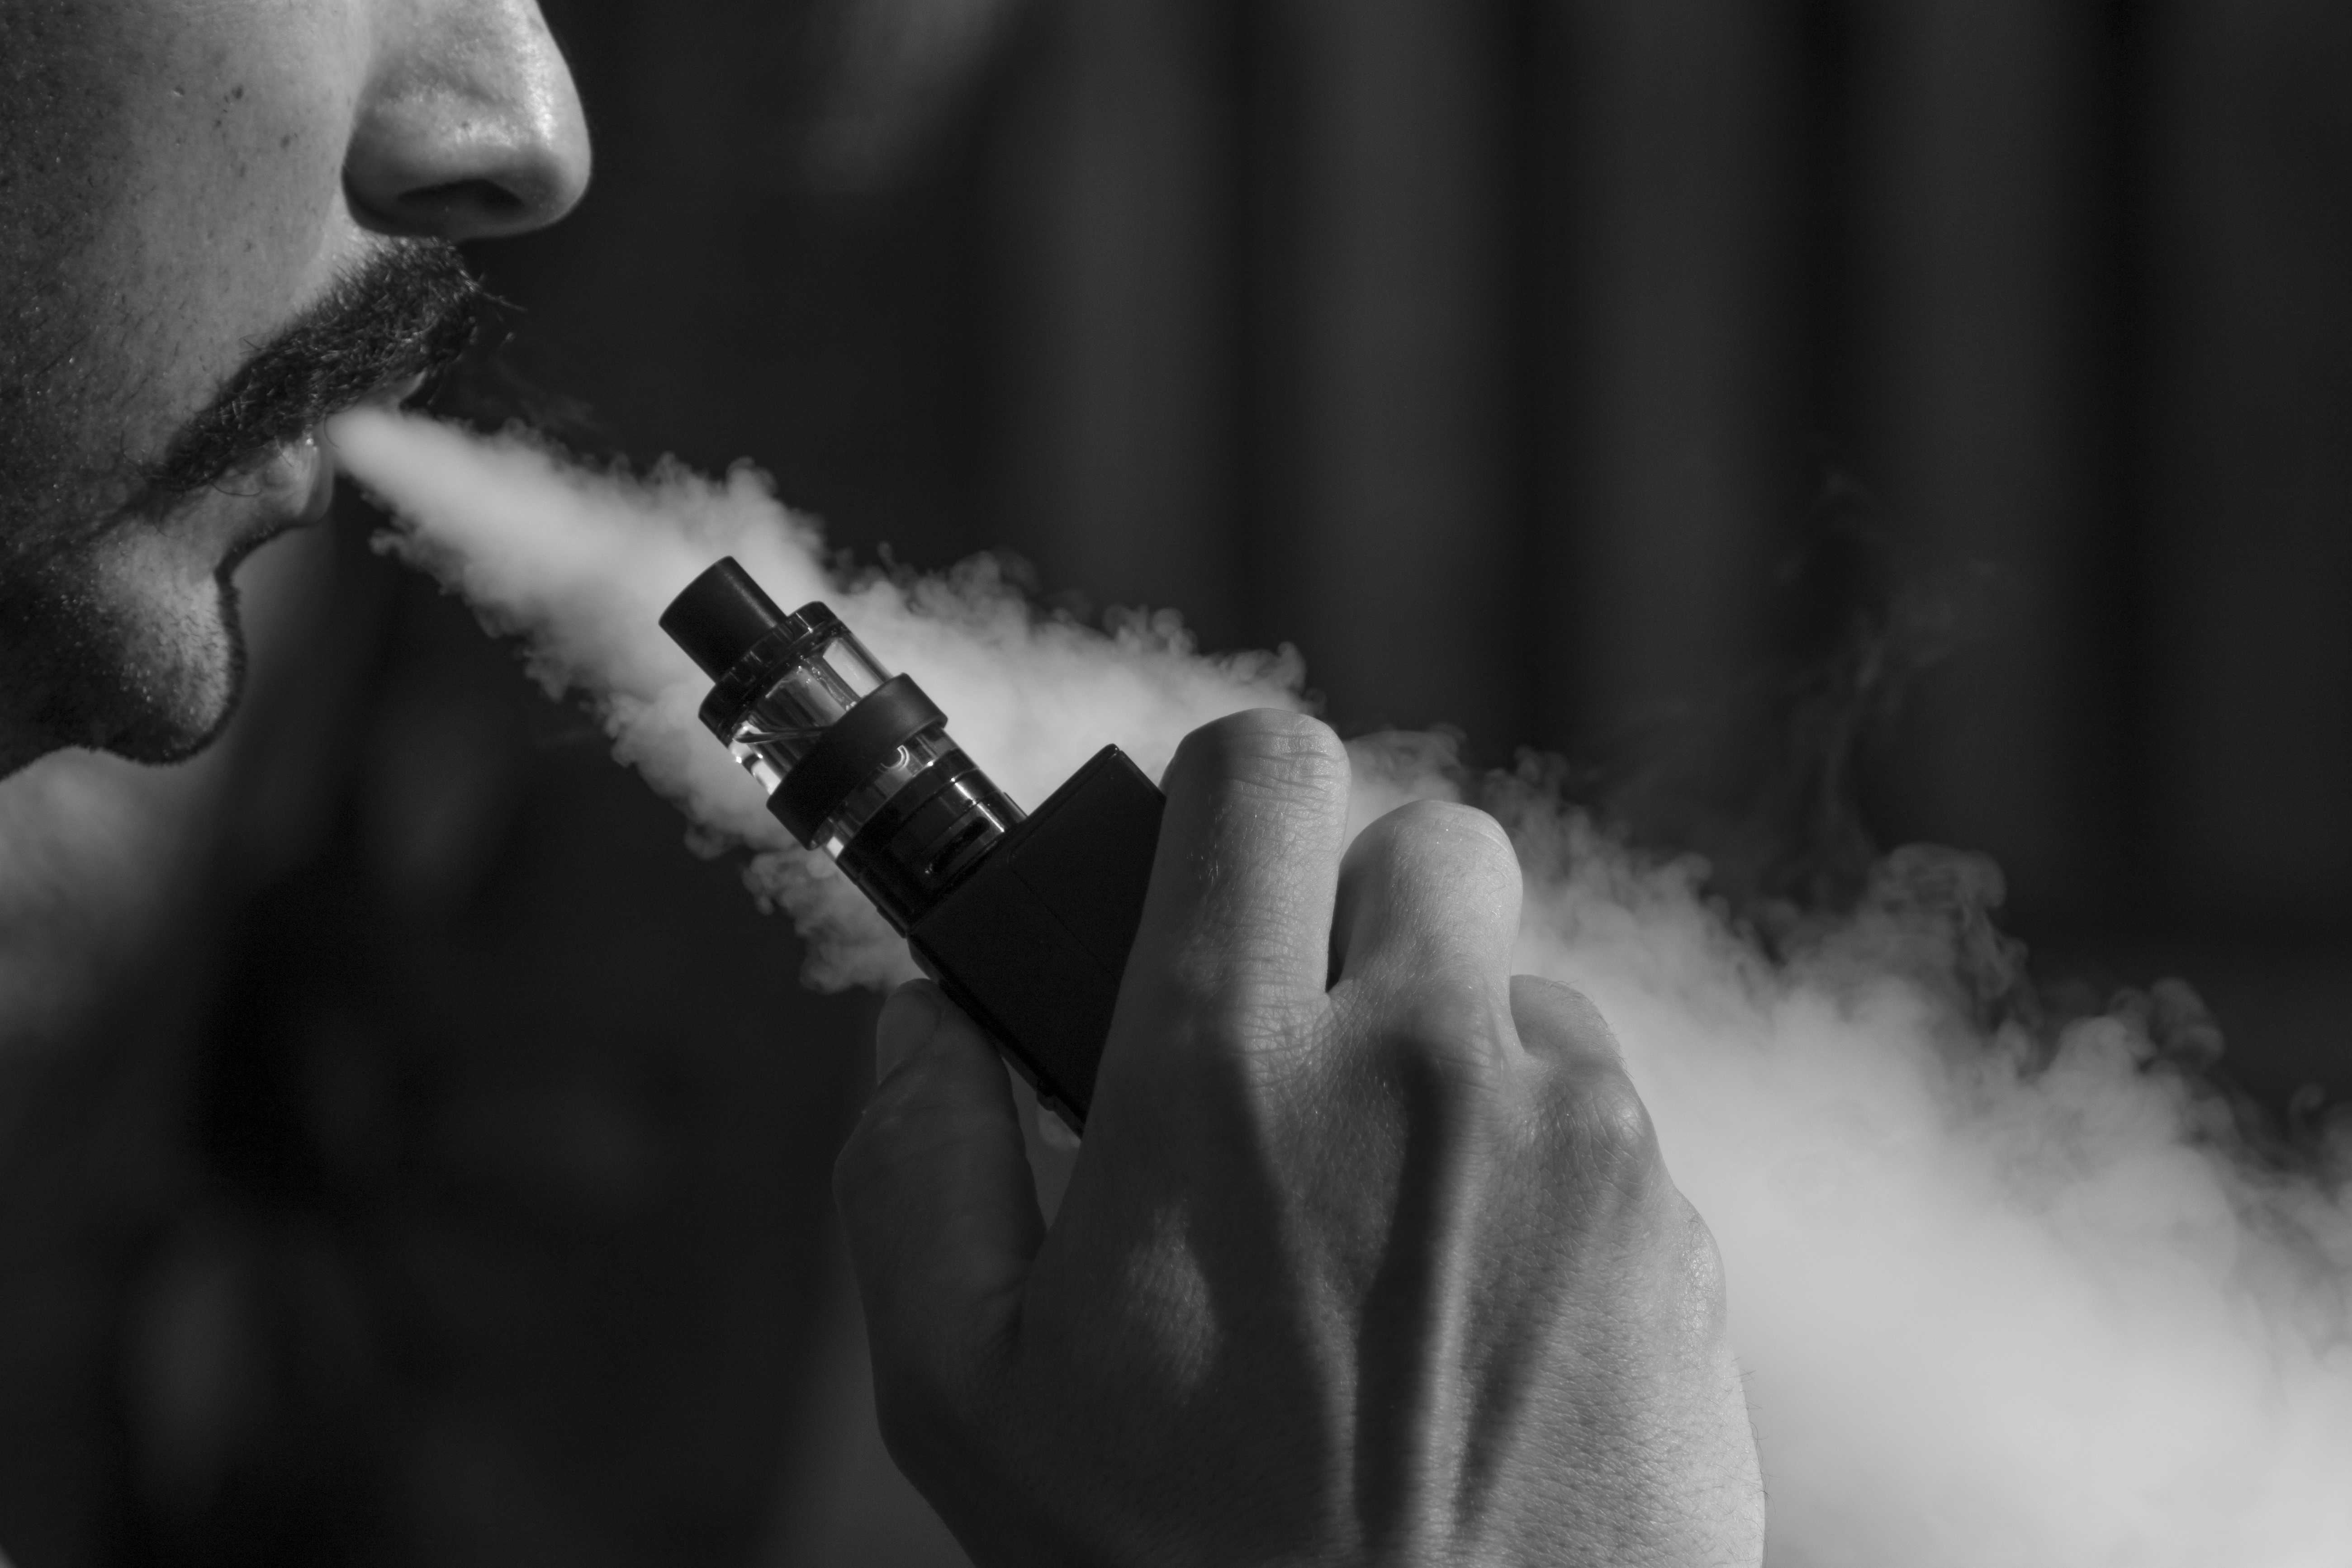 Looking for the Perfect Vape? How to Choose the Right Pen for You